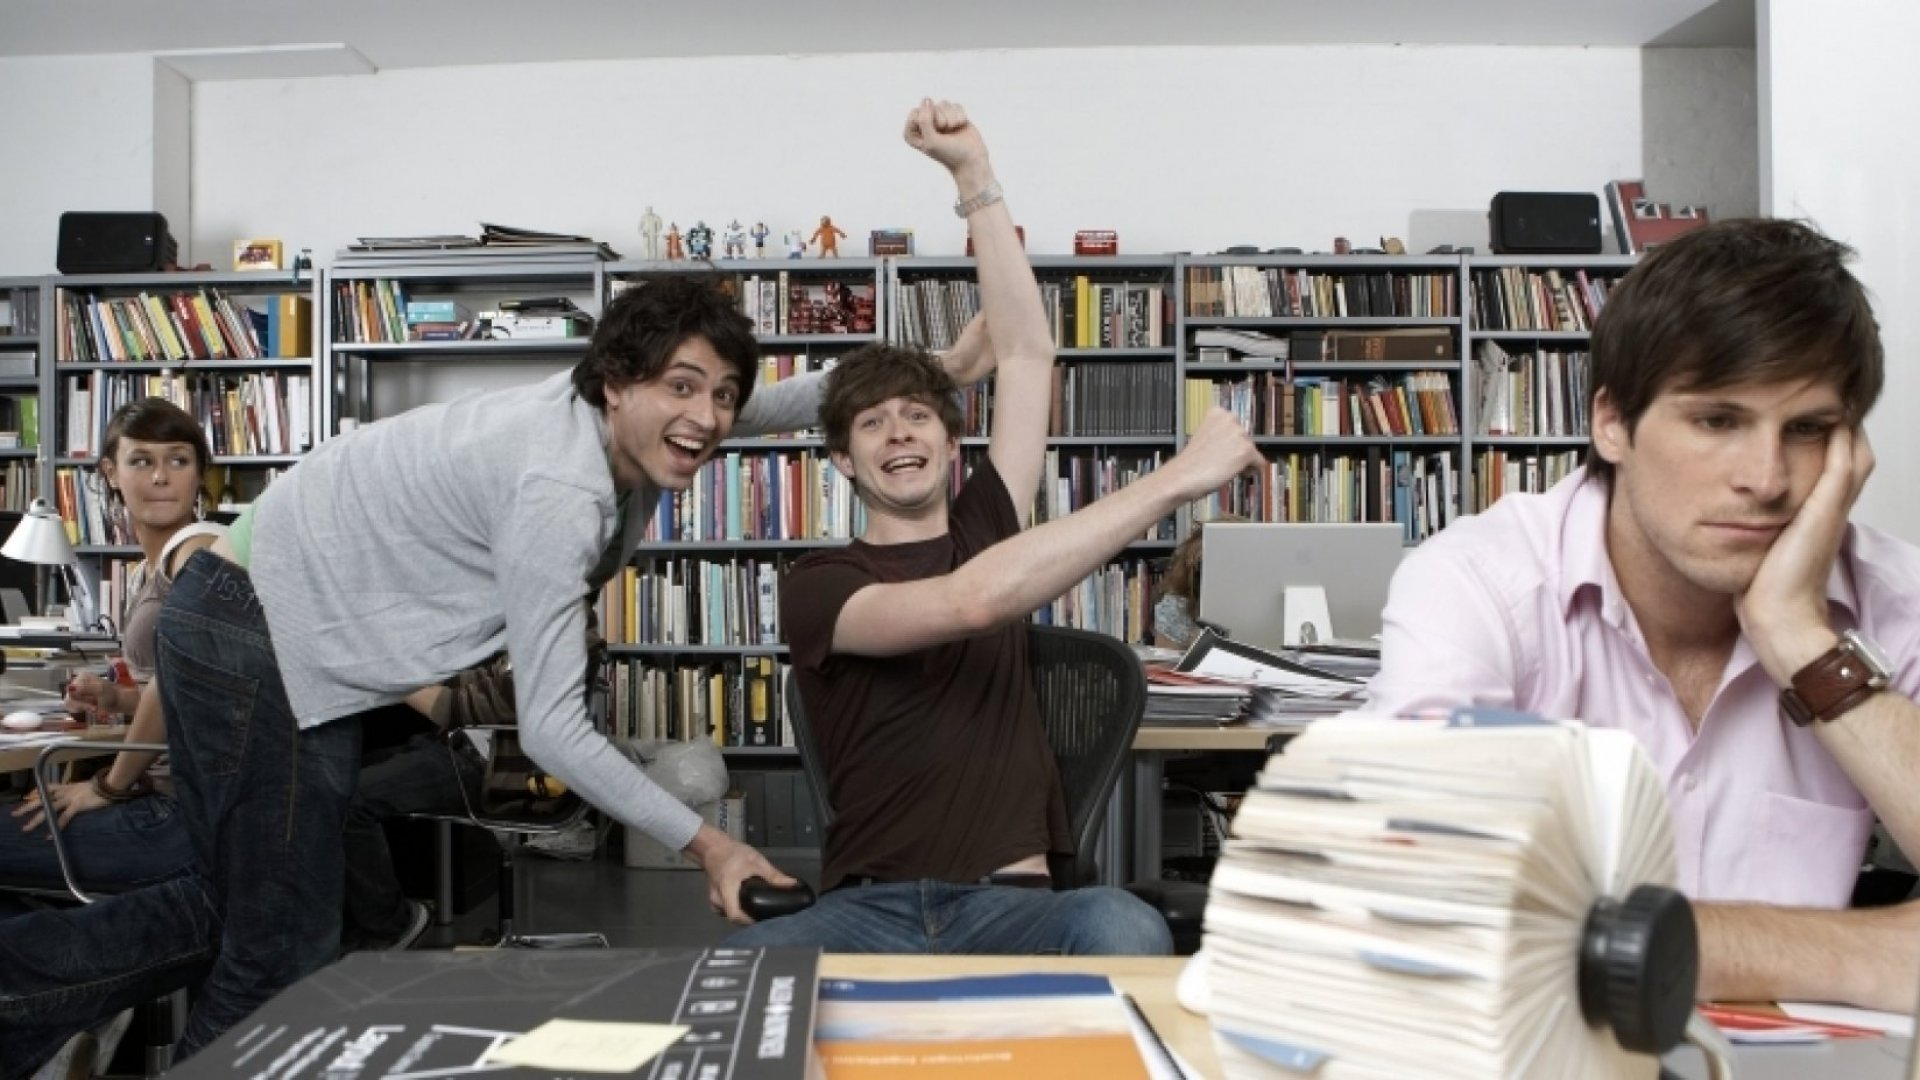 76 Percent of Employees Are More Productive When They Leave the Office